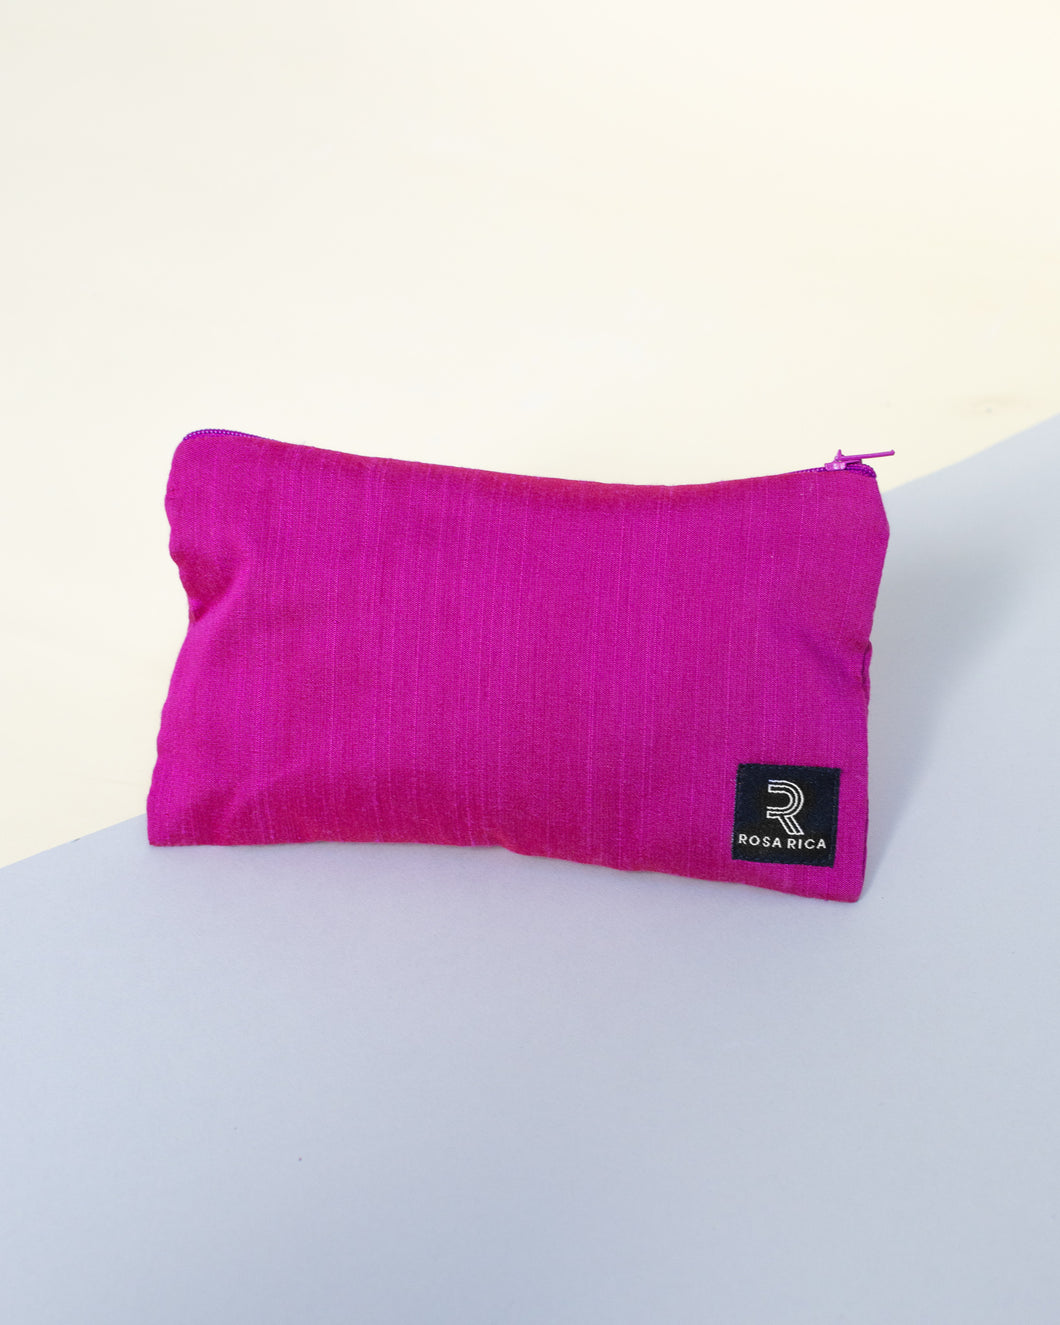 Raw Silk Travel Pouch (Rose Pink) - Fits 6 x 10ml bottles